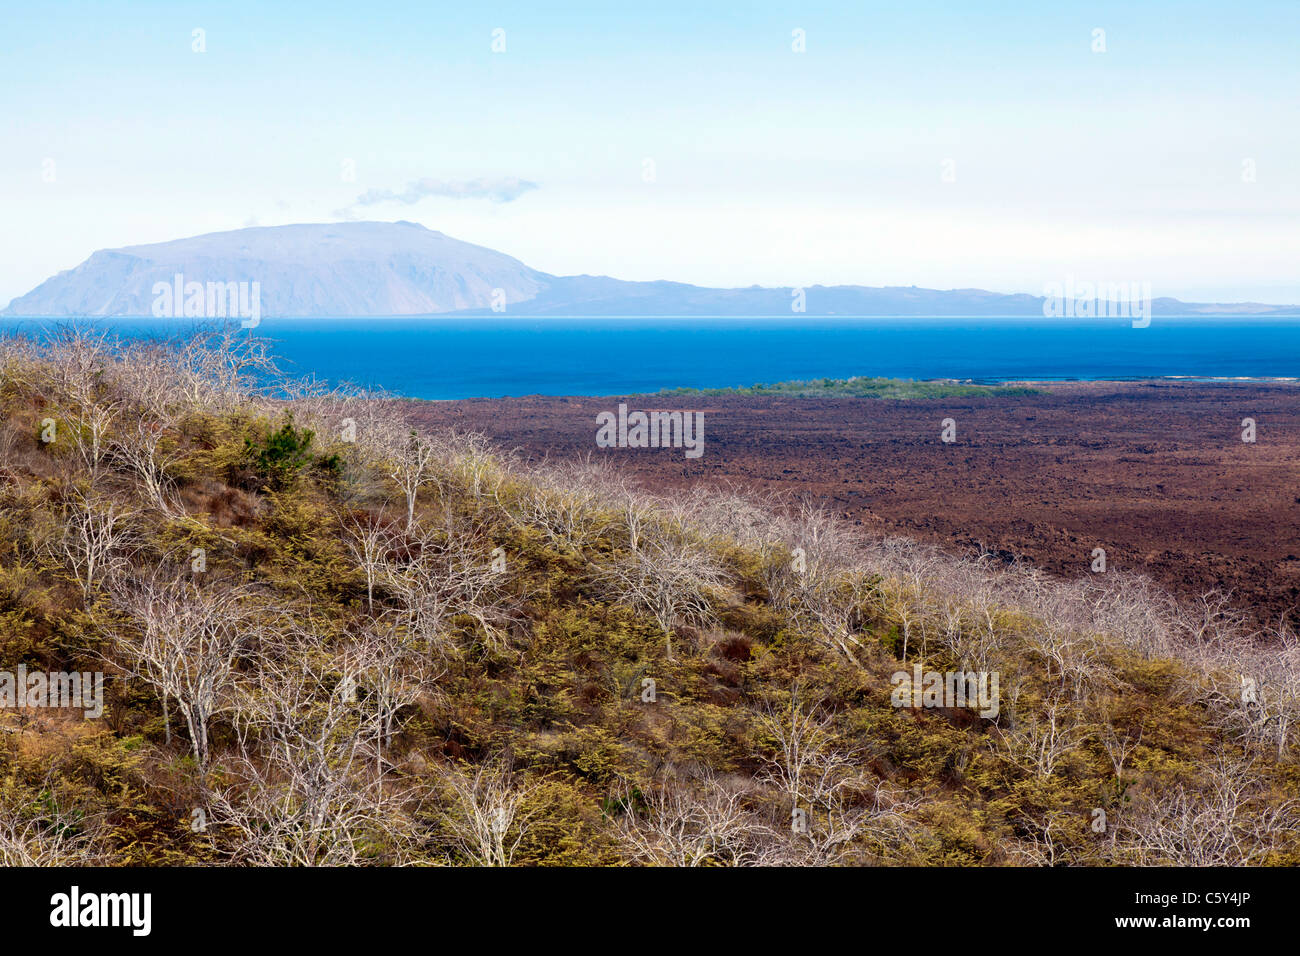 View over the lava field at Isabella Island, near Tagus Cove, Galapagos - Stock Image